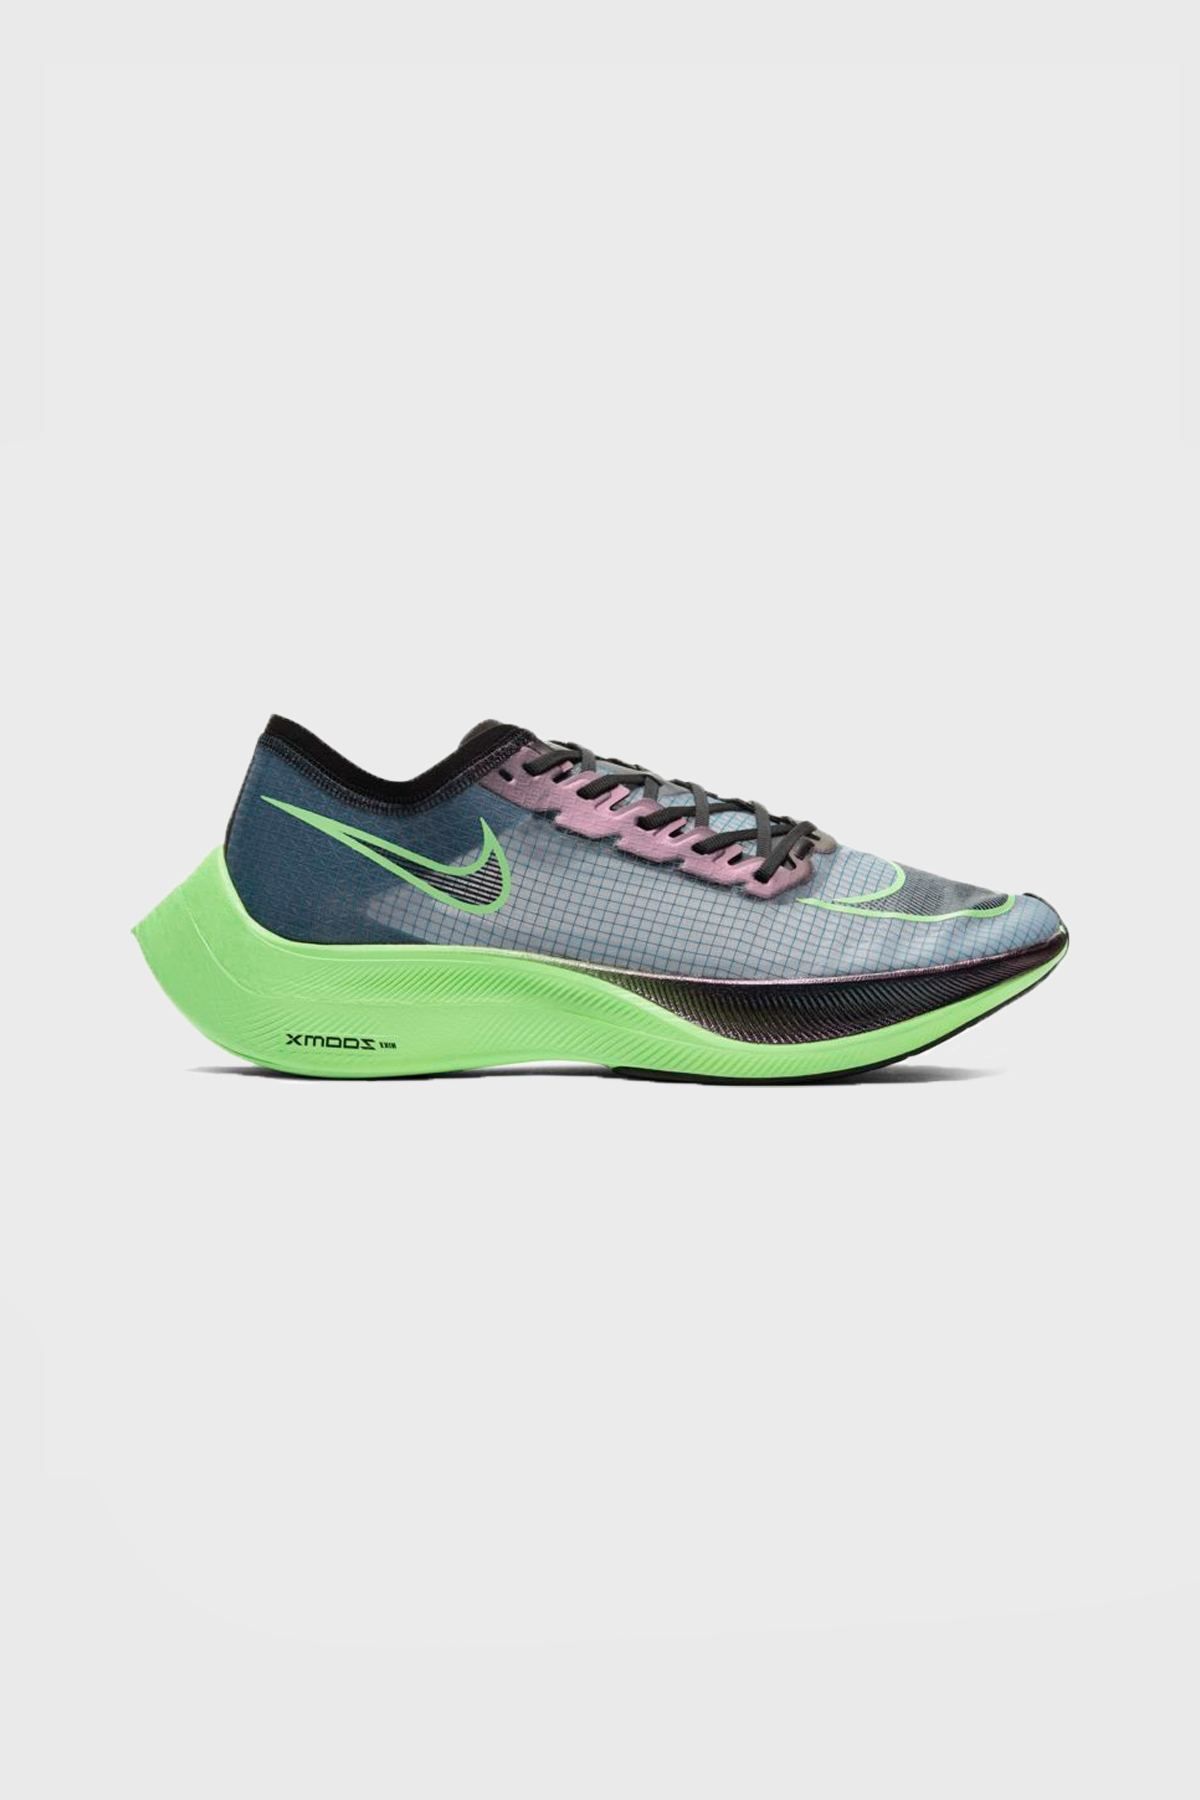 Nike - ZoomX Vaporfly Next% - Black Green